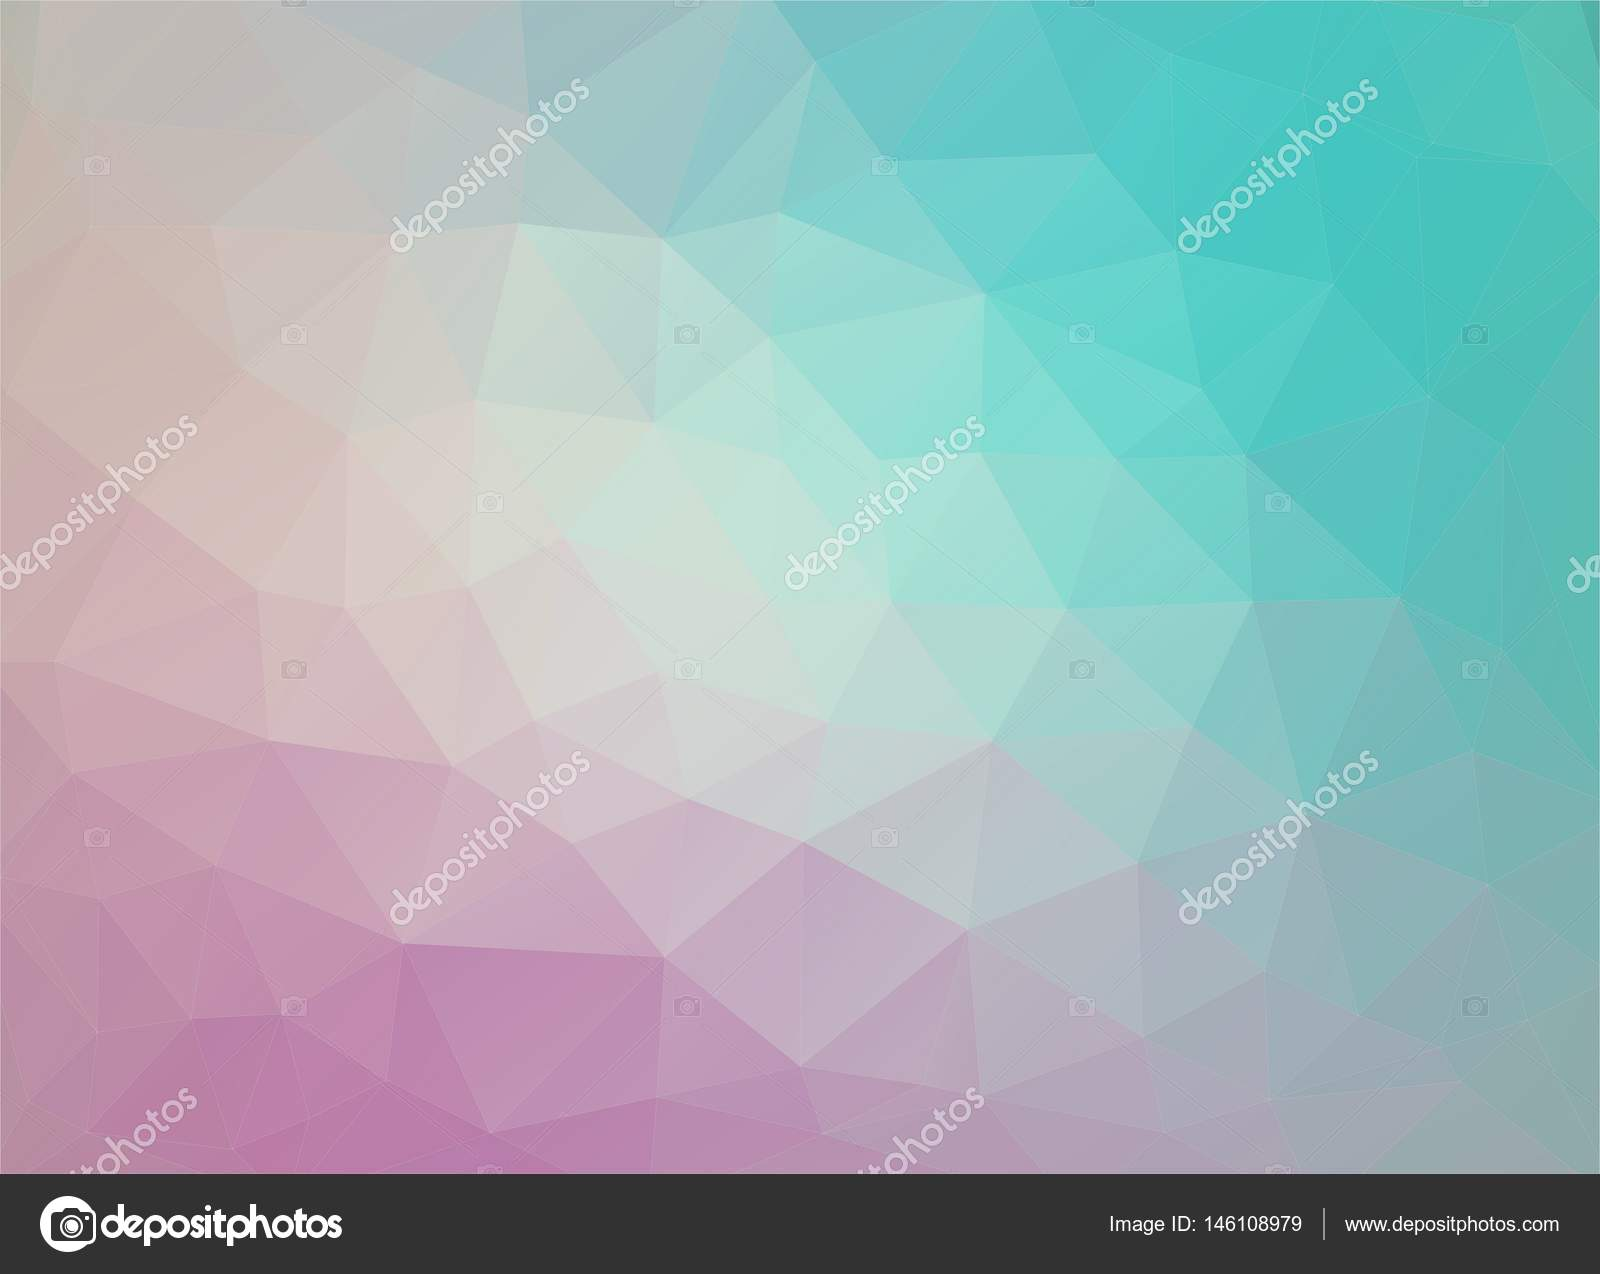 Flat Duocolor Geometric Triangle Pattern Wallpaper Vector Background By Ishmel